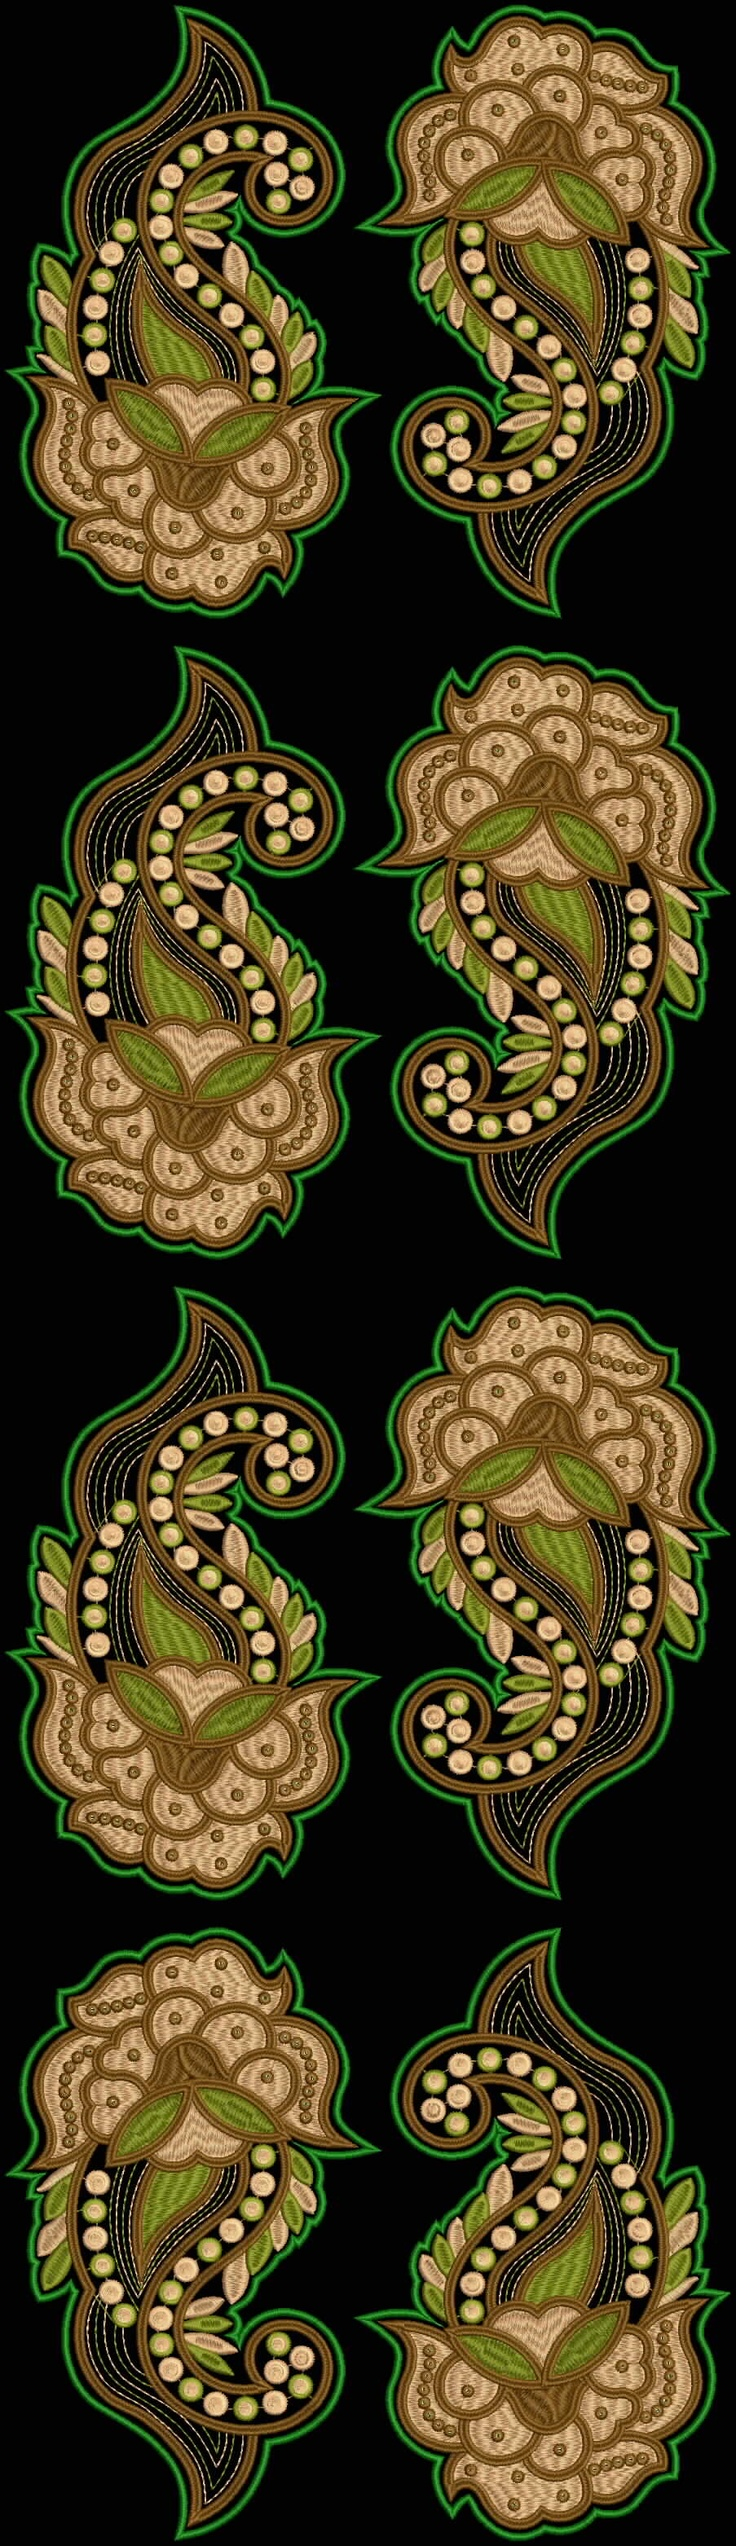 Latest Embroidery Designs For Sale, If U Want Embroidery Designs Plz Contact (Khalid Mahmood, +92-300-9406667) www.embroiderydesignss.blogspot.com Design# Patanga10-B